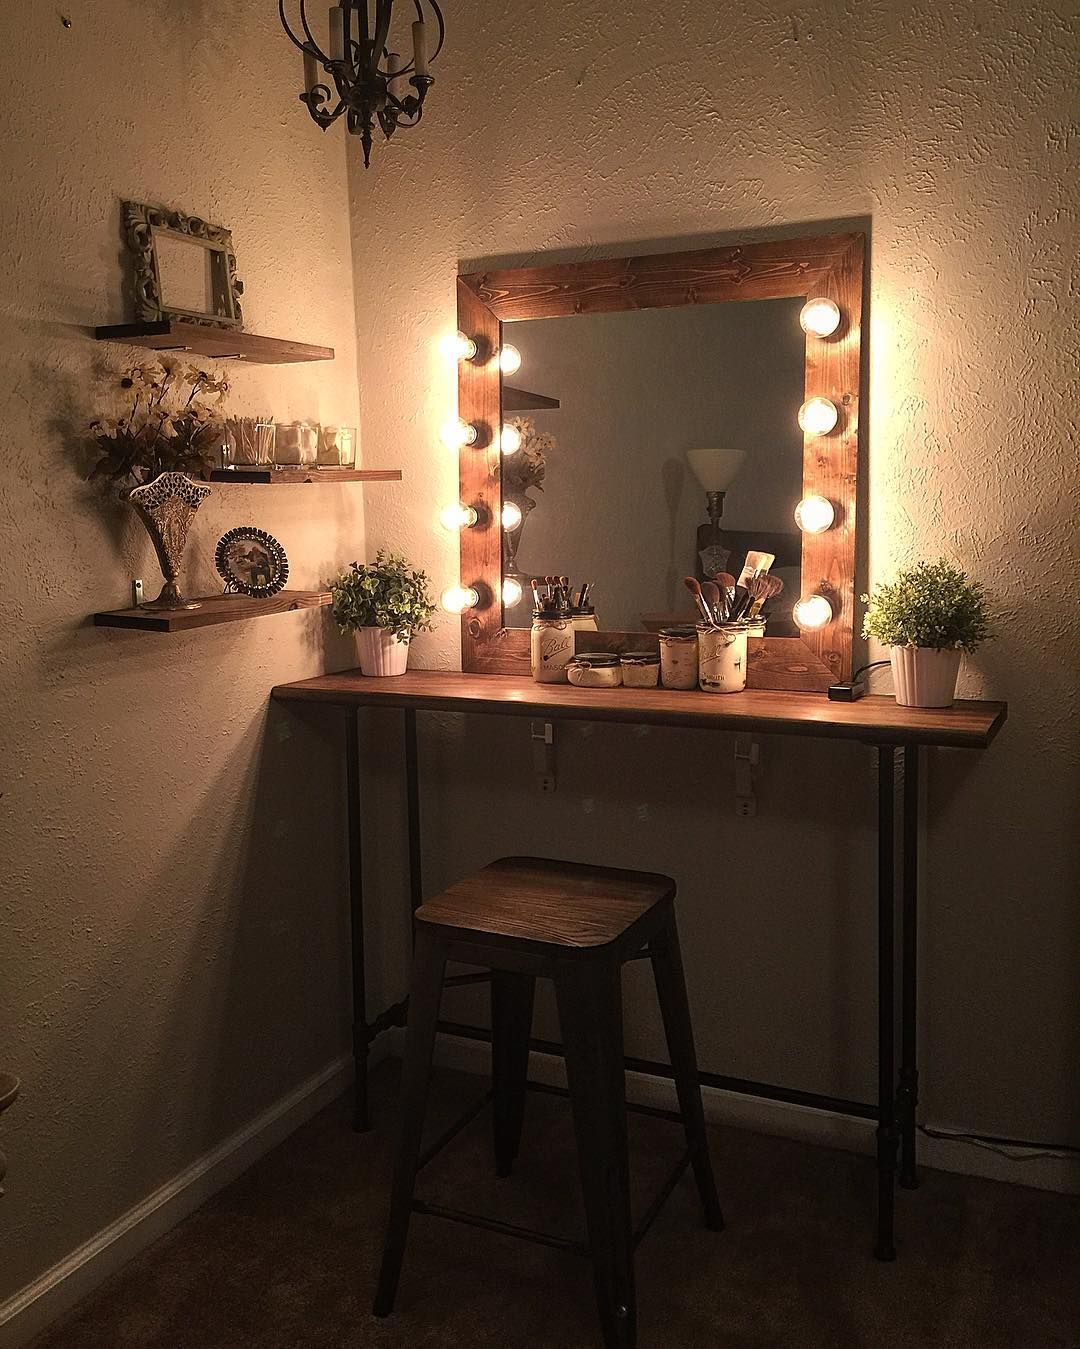 rustic vanity mirrors for bathroom. Cute Easy Simple DIY Wood Rustic Vanity Mirror With Hollywood Style Lights  4 Any Makeup Room This Cozy Farmhouse Is The Perfect Way To Get A